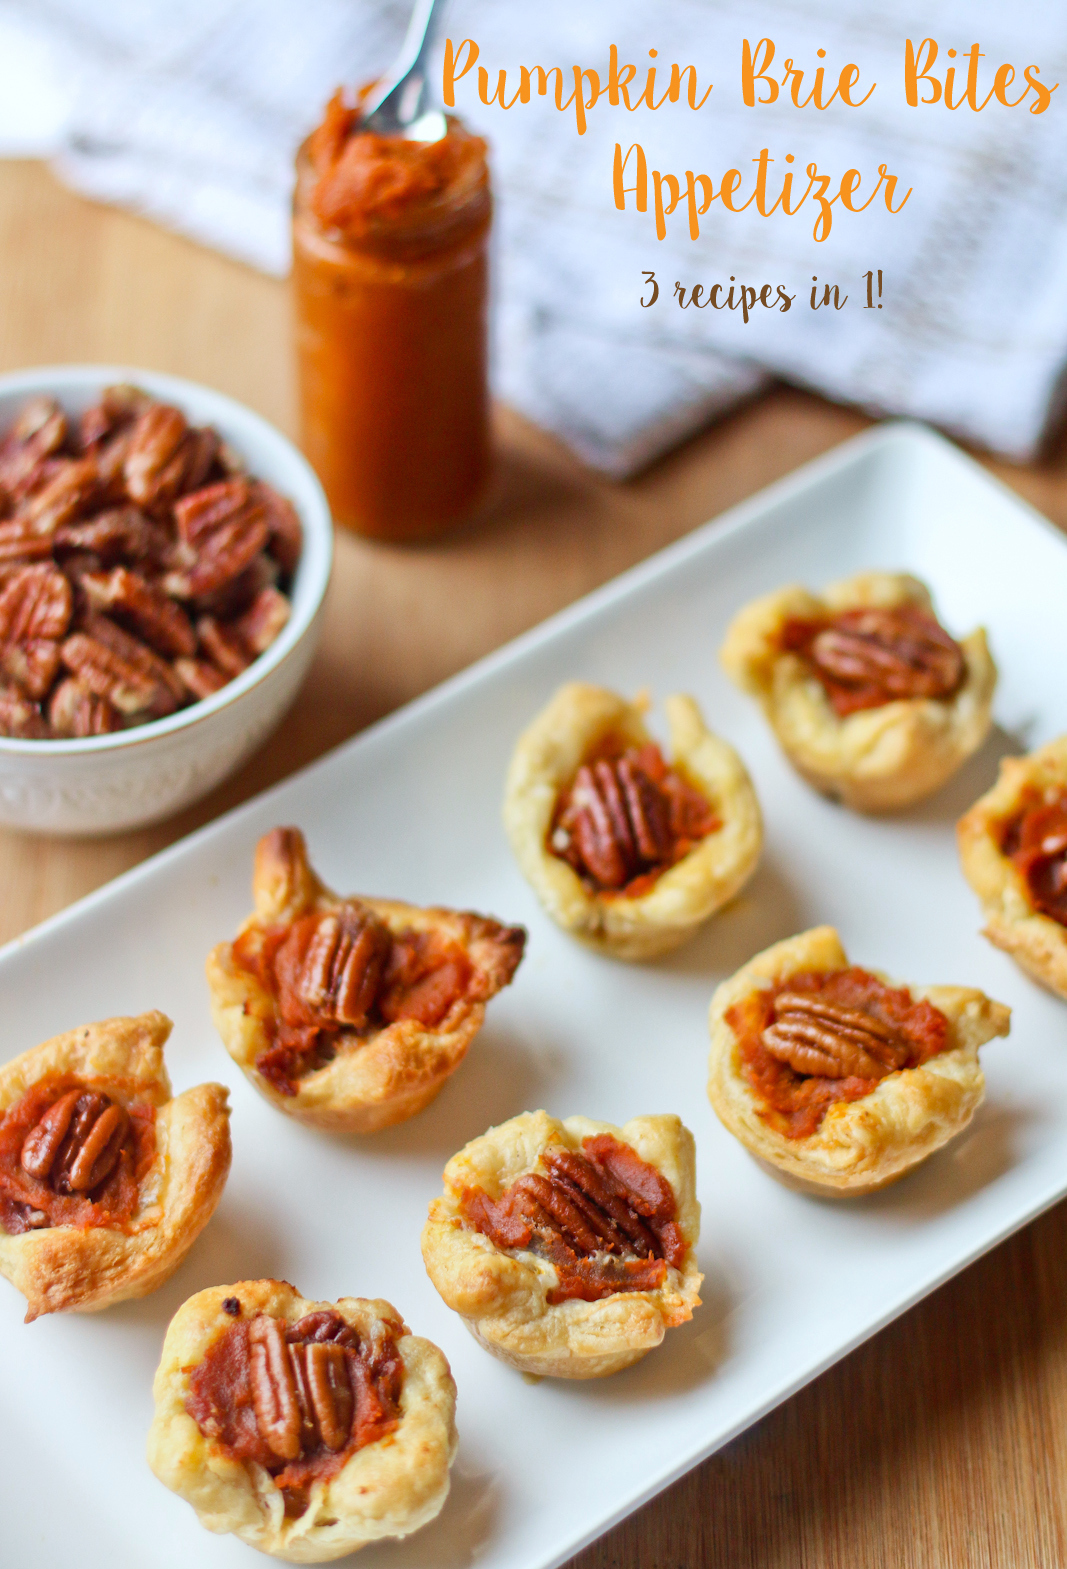 Pumpkin Brie Bites Appetizer Recipe - 3 recipes in 1, perfect for Thanksgiving!